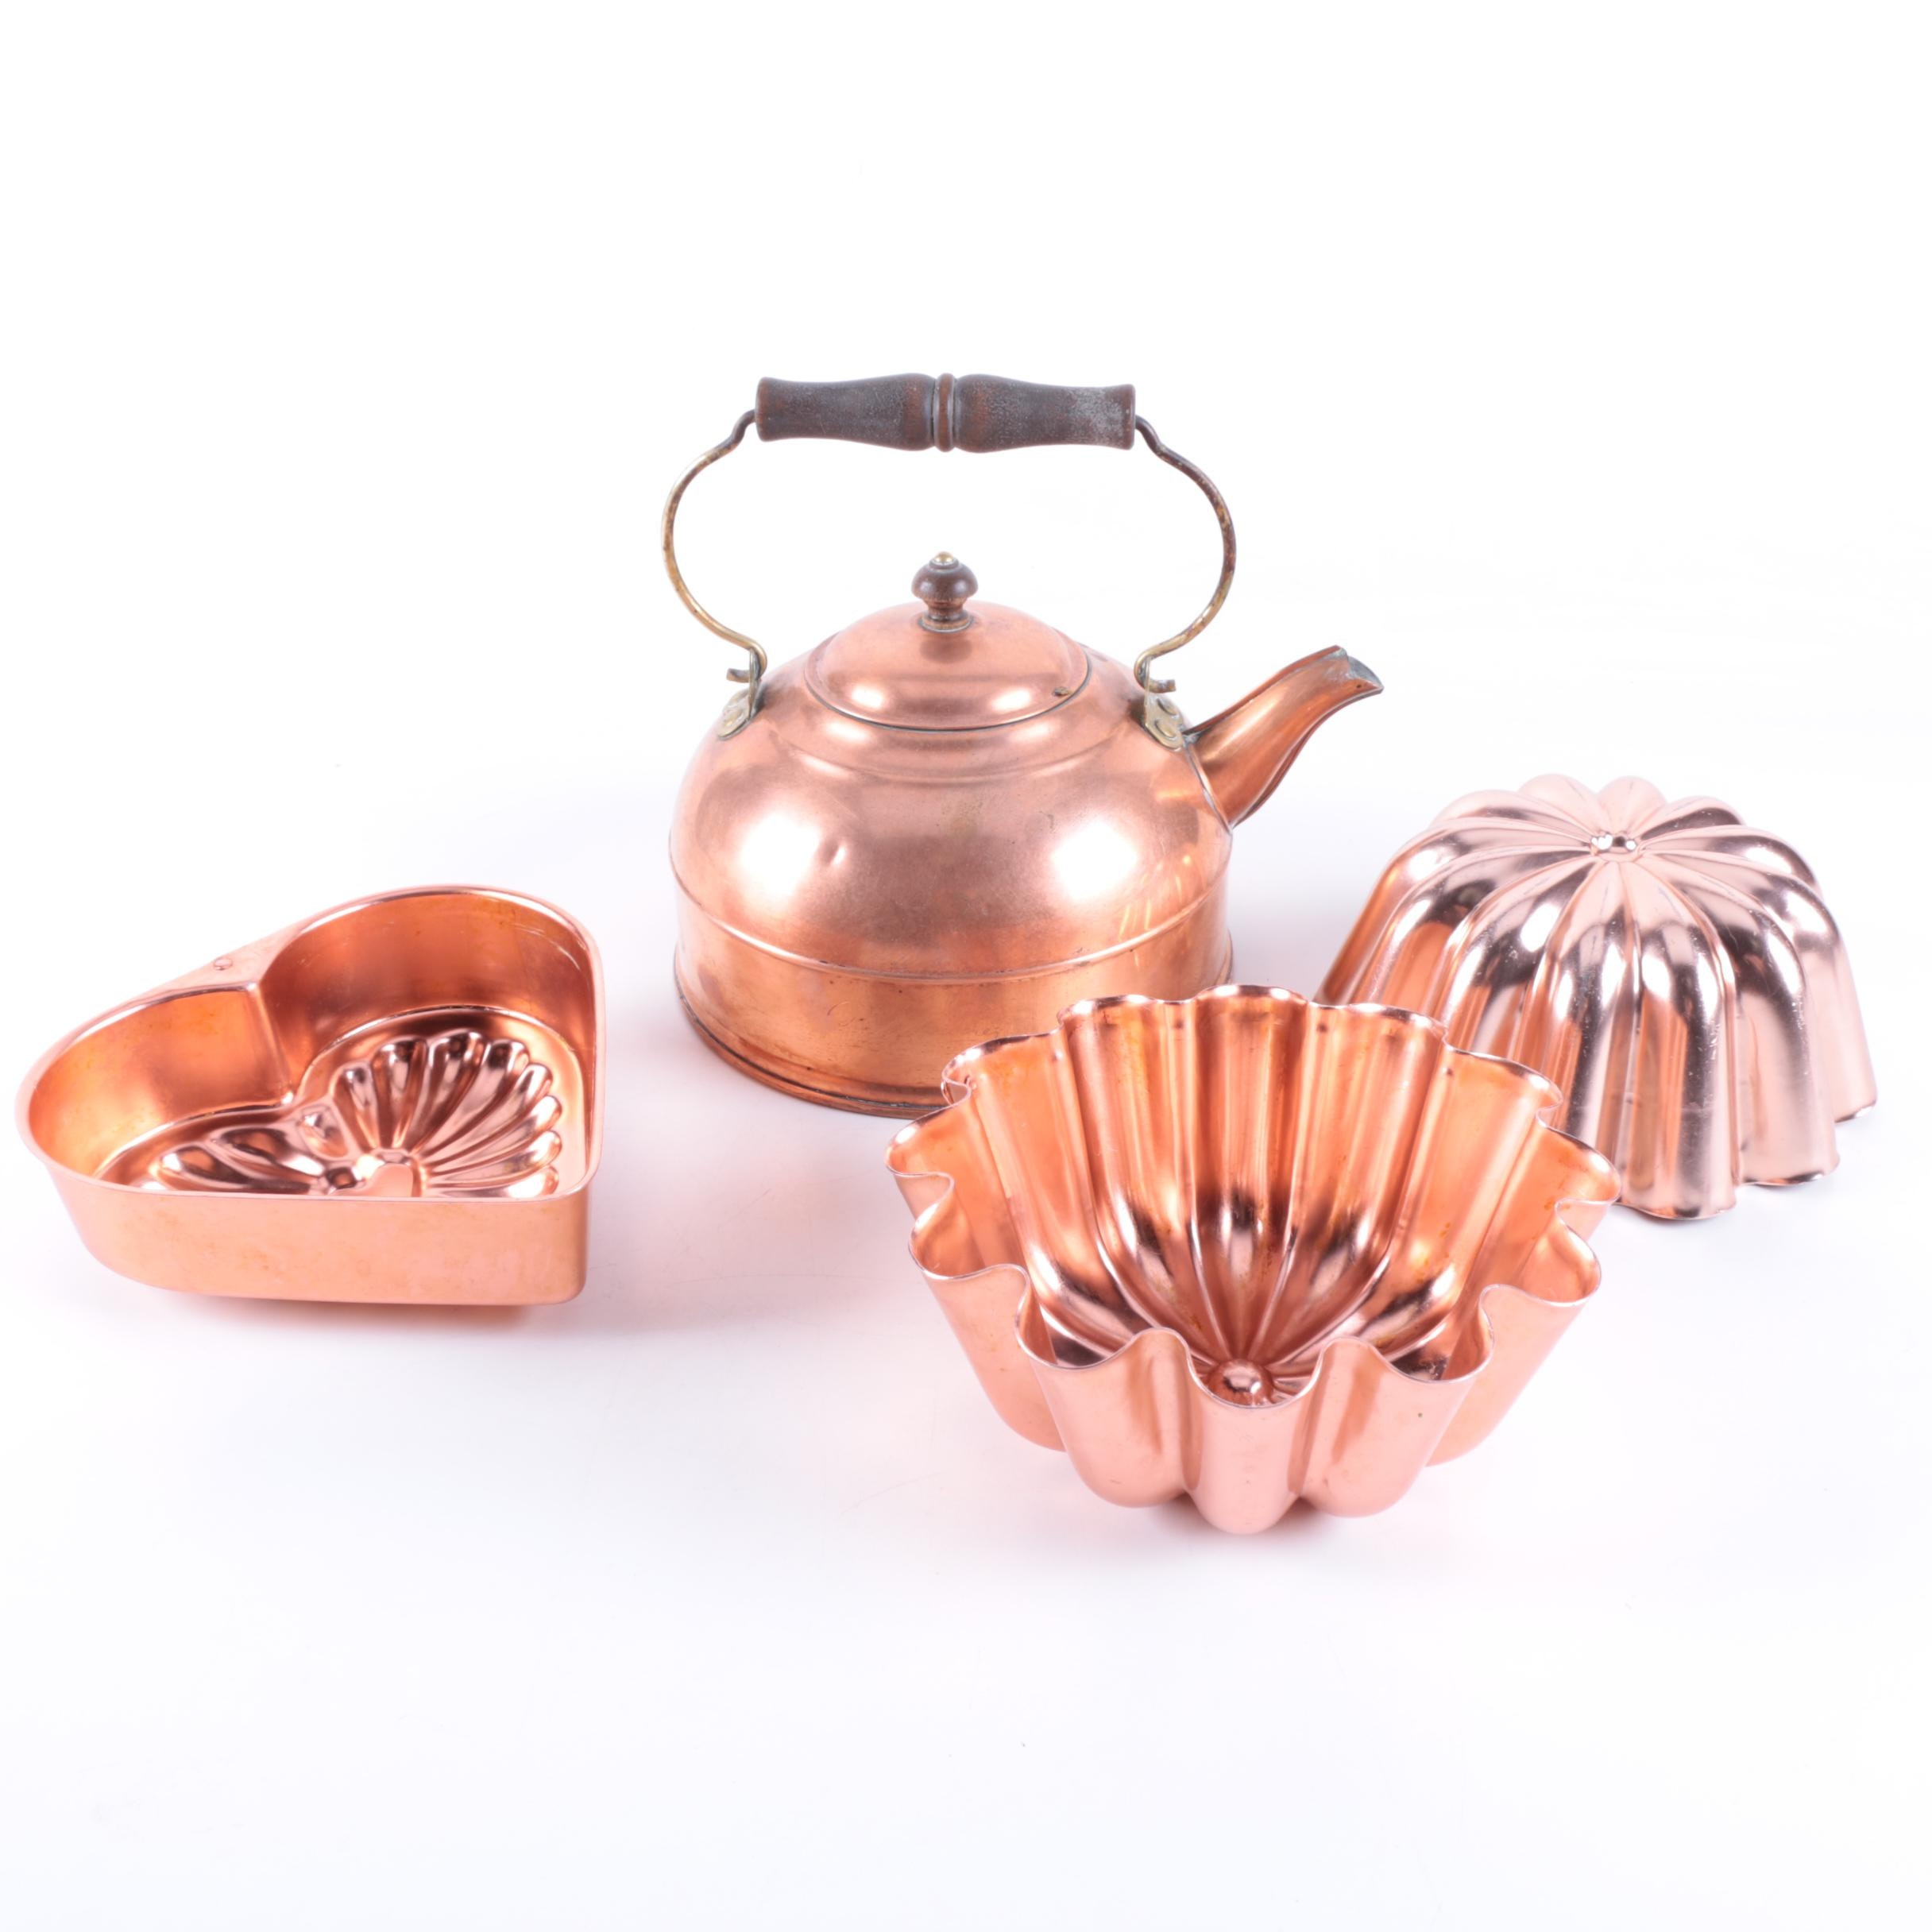 Copper Kettle and Molds